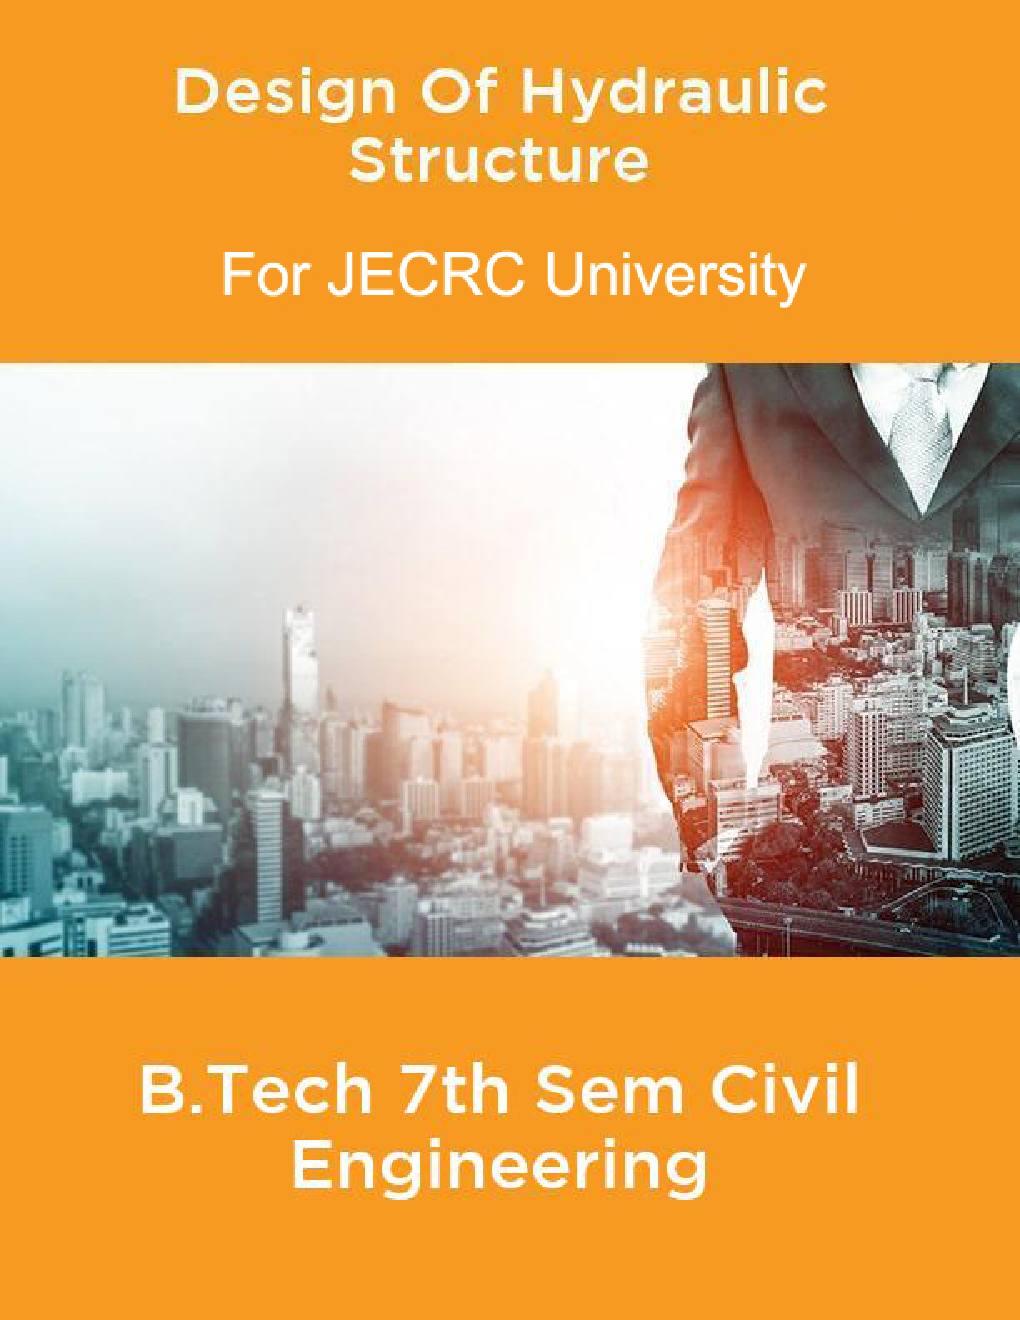 Design Of Hydraulic Structure B.Tech 7th Sem Civil Engineering For JECRC University - Page 1